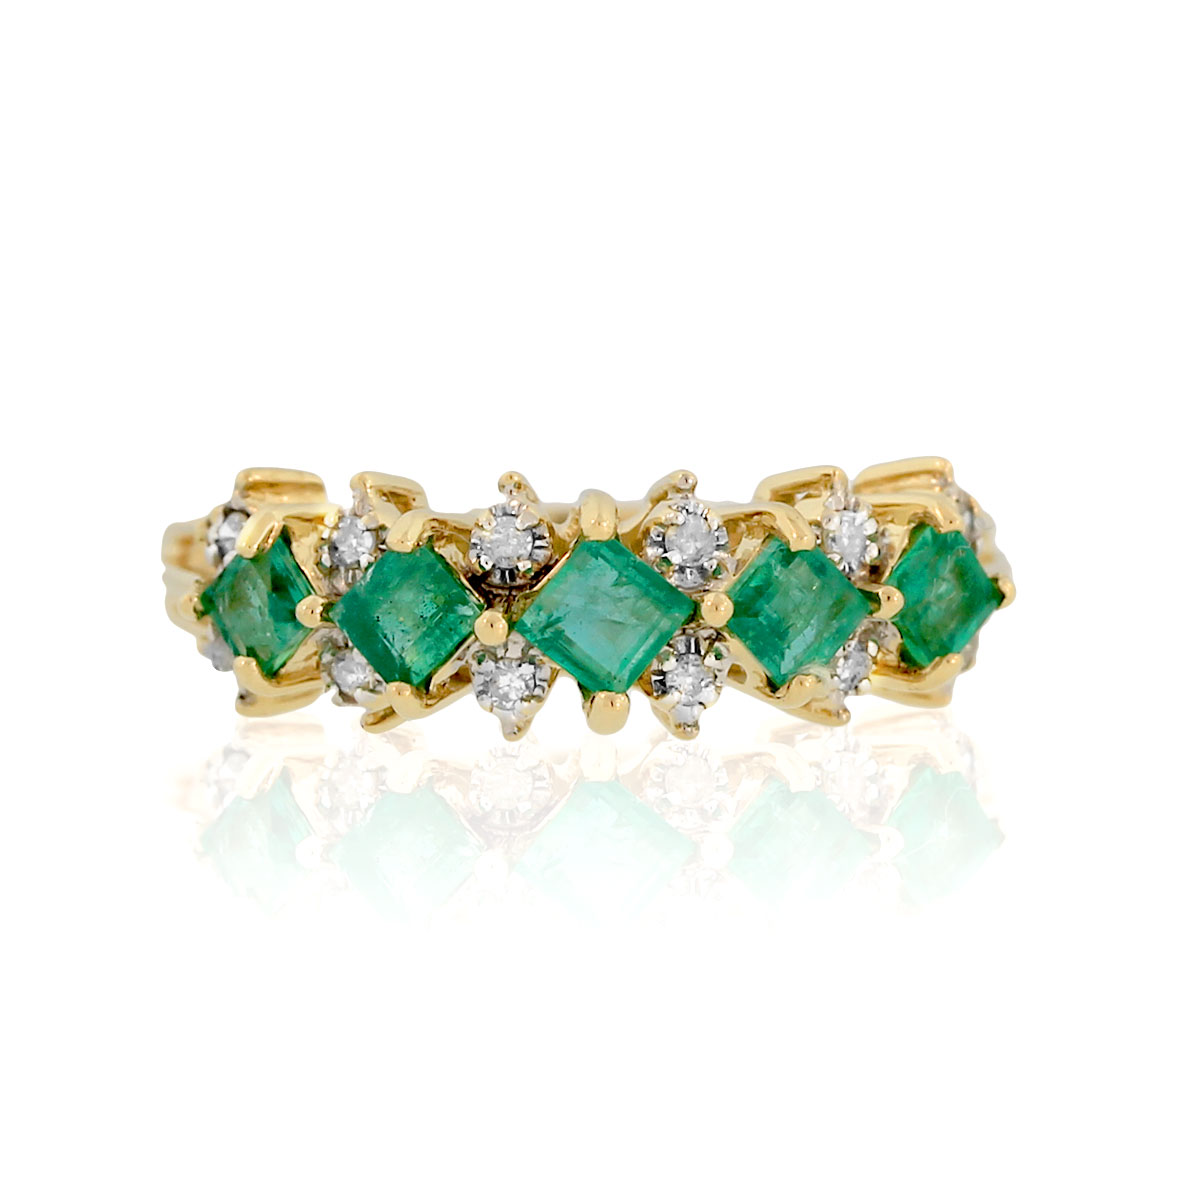 You are viewing this 14k Yellow Gold Diamond & Emerald Ring